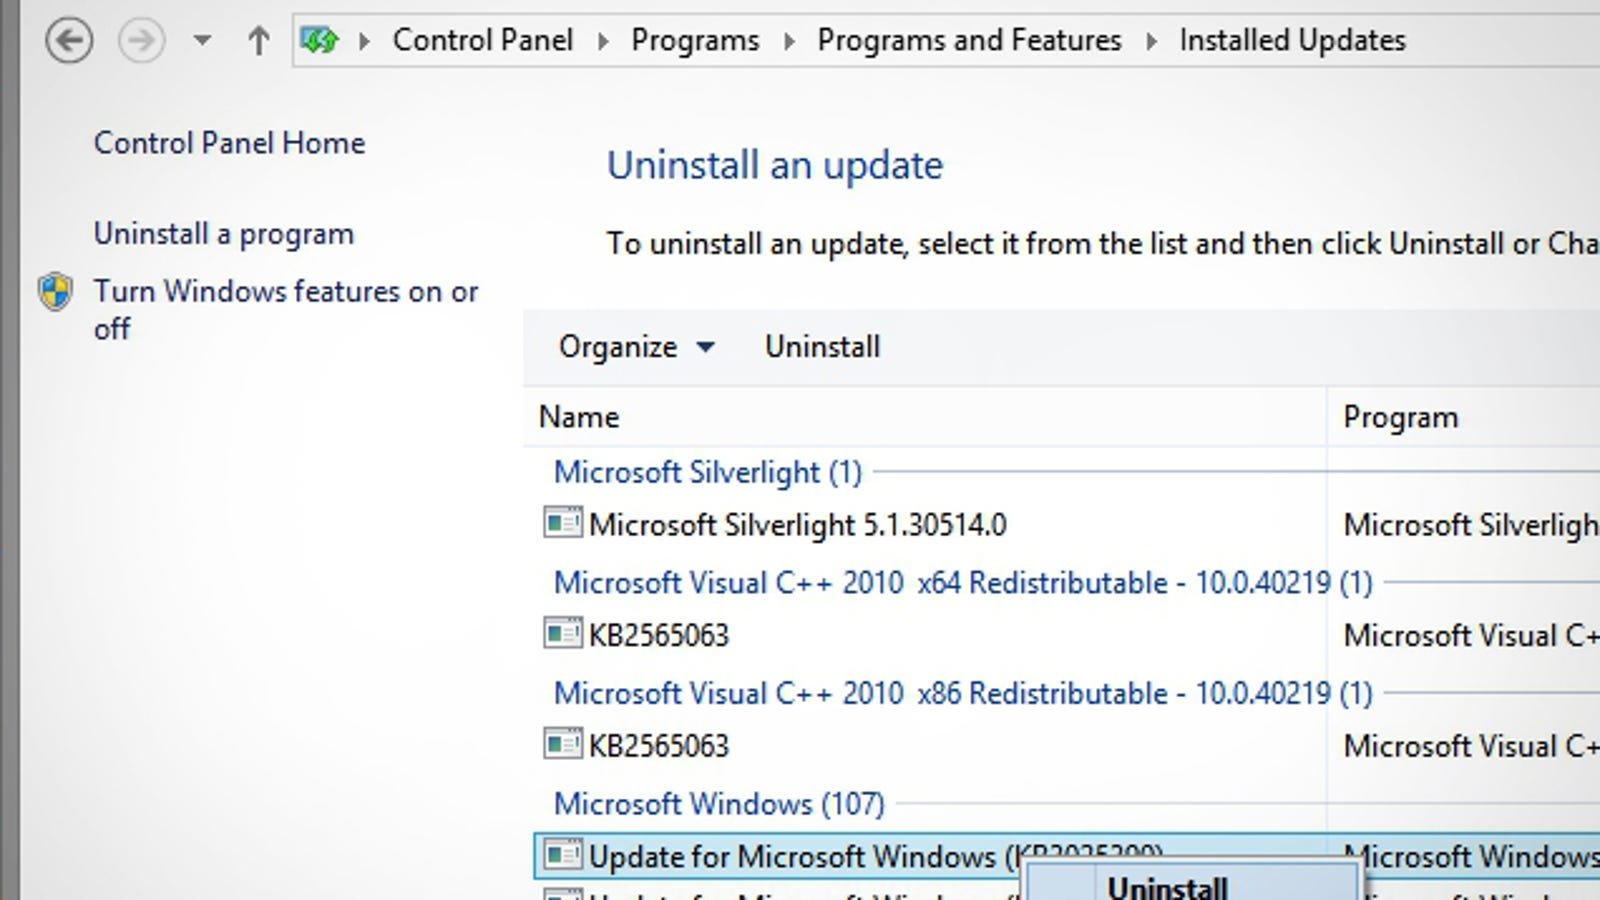 How to Uninstall a Windows Update that Broke Something